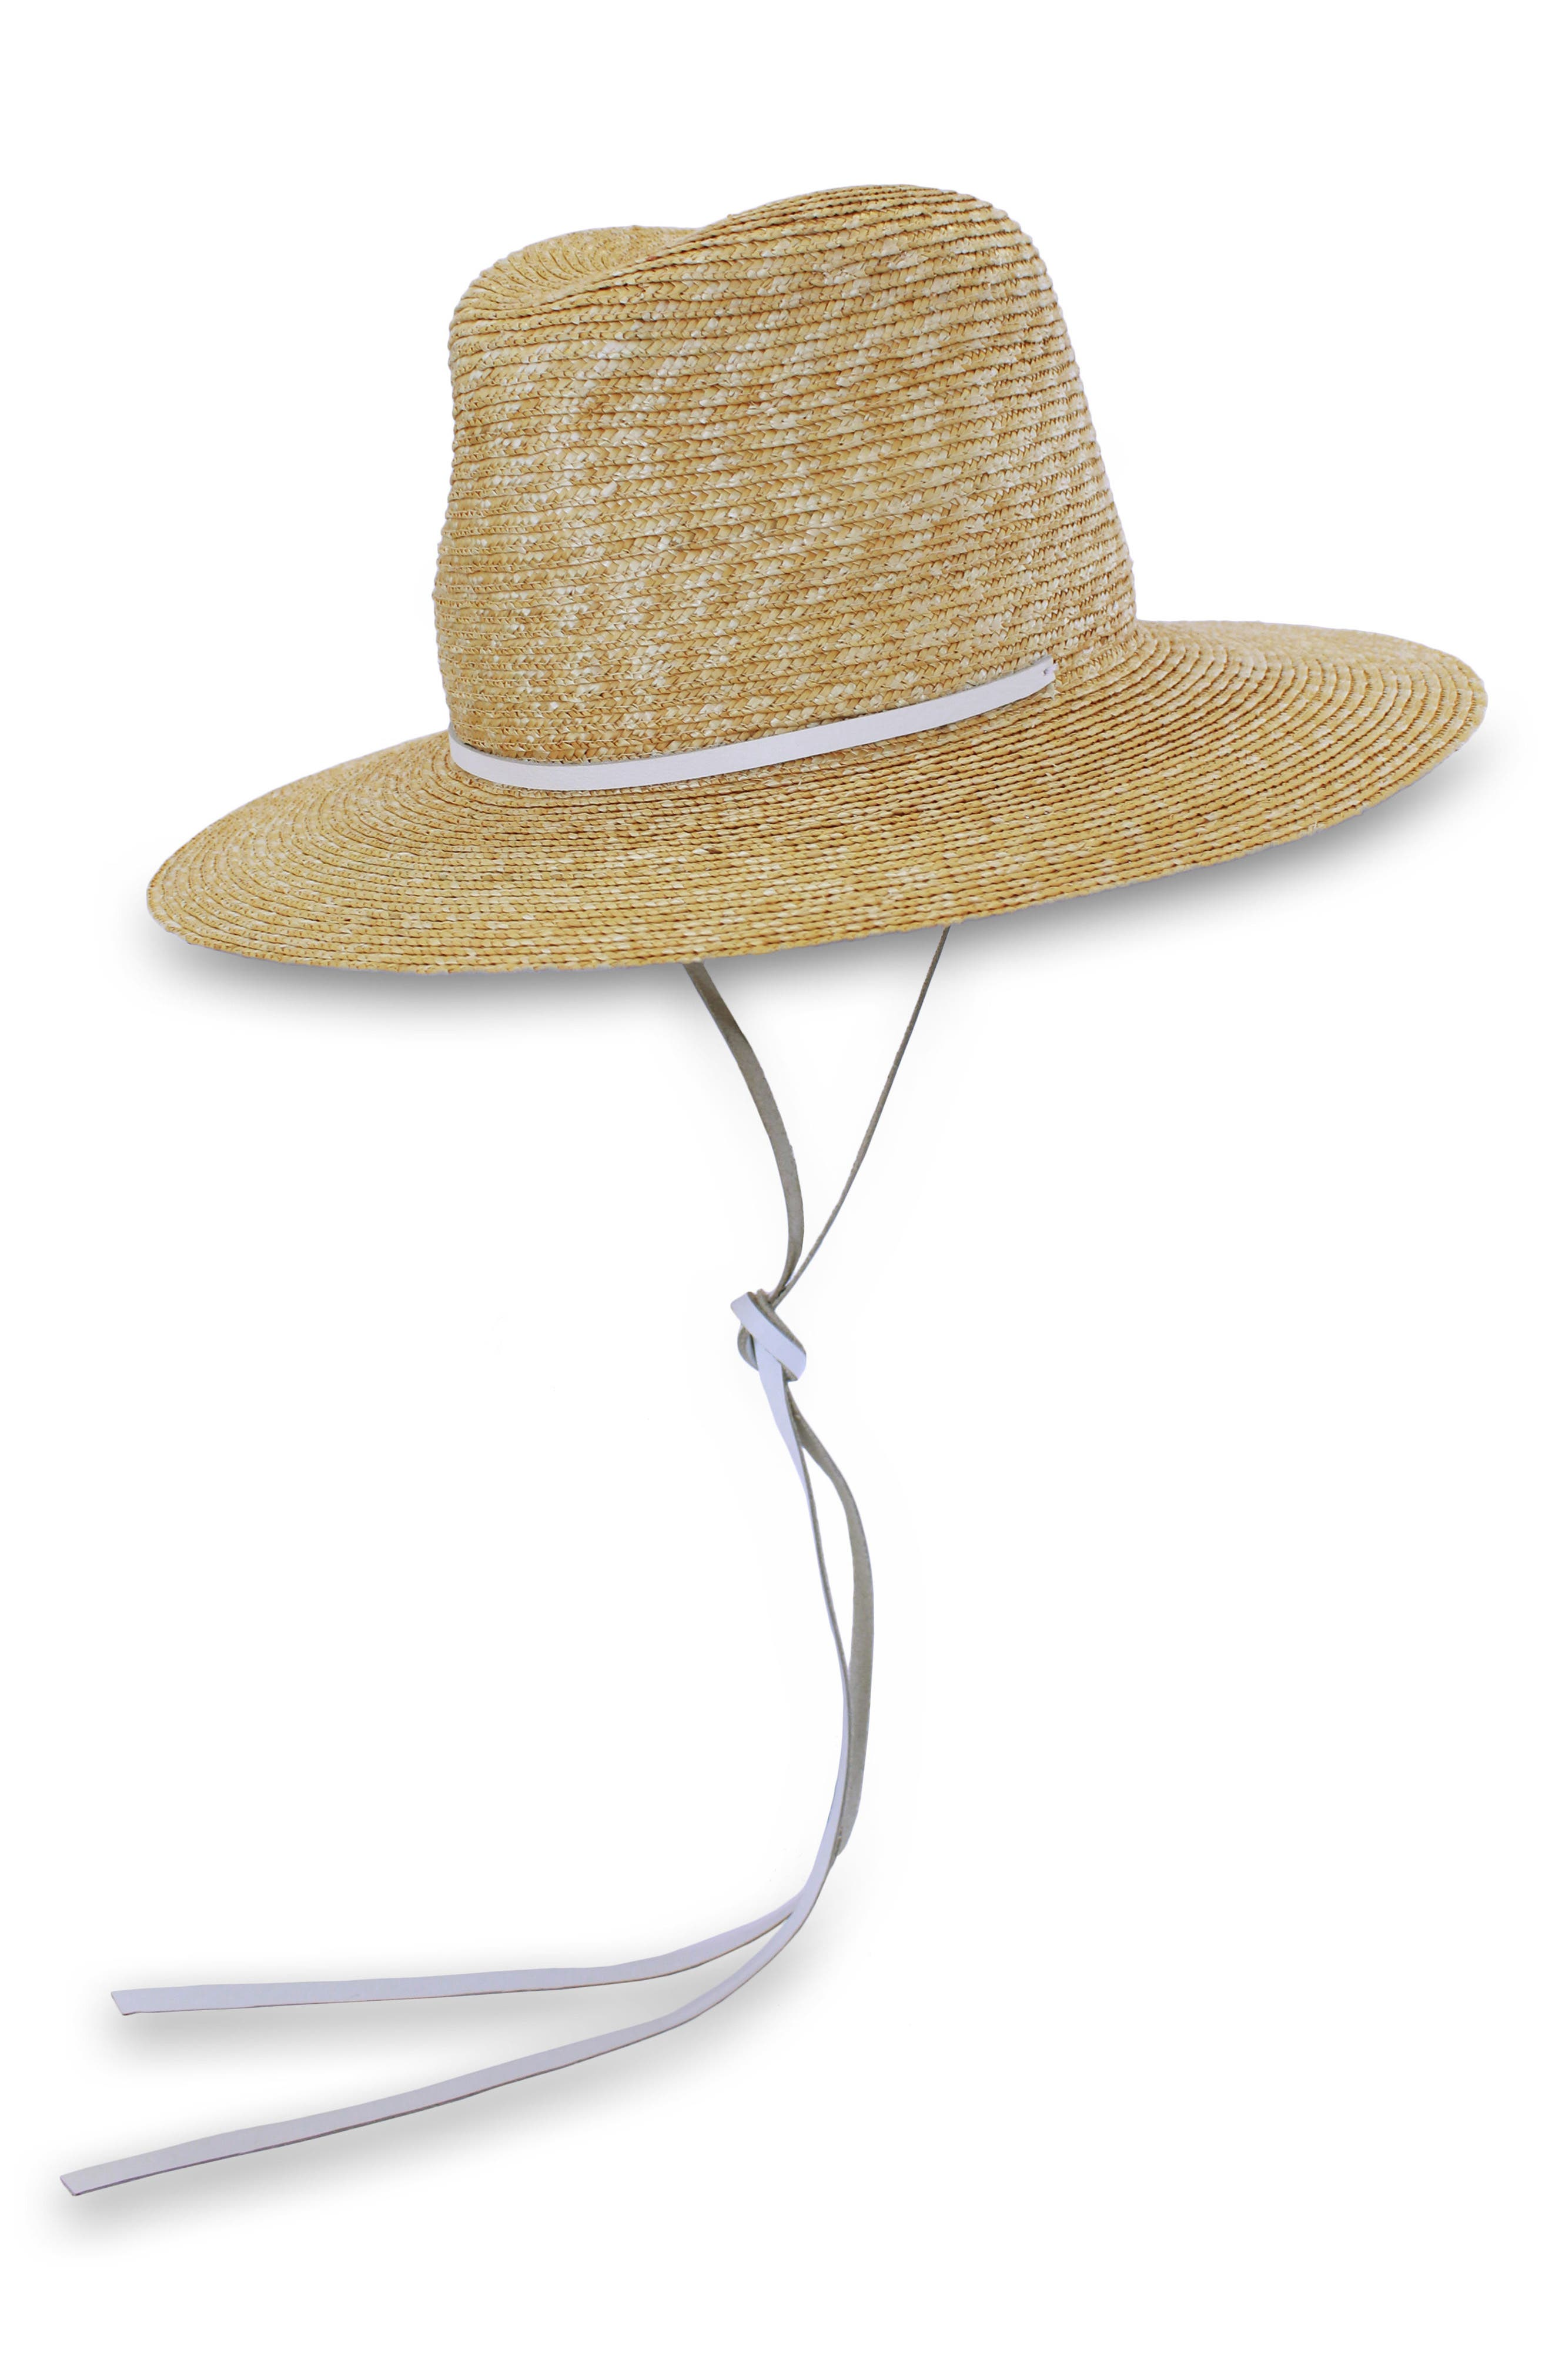 Marseille Straw Hat,                         Main,                         color, NATURAL/ WHITE